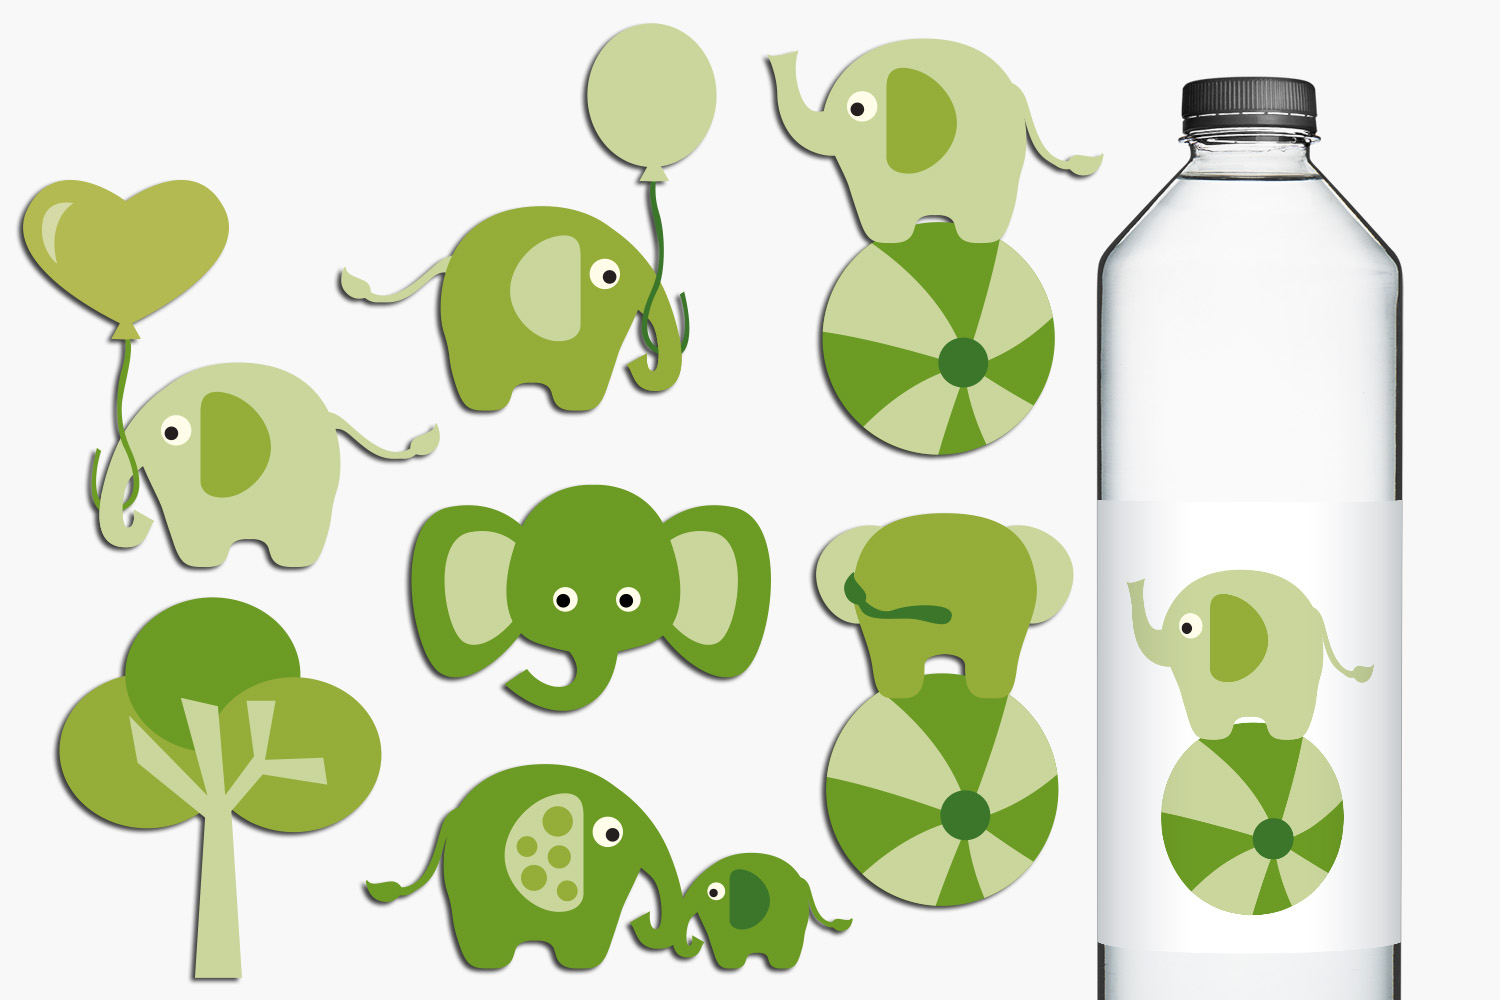 Green circus elephants illustations example image 1